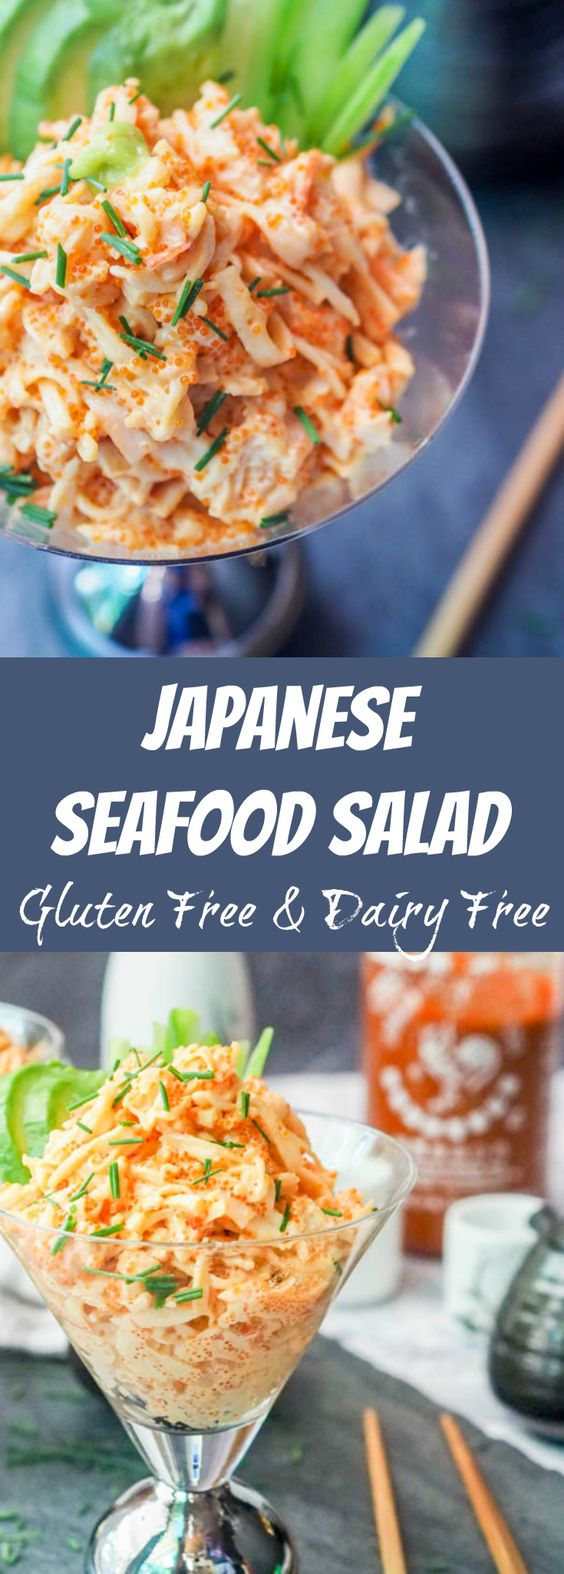 Seafood Salad with Asian Flavors